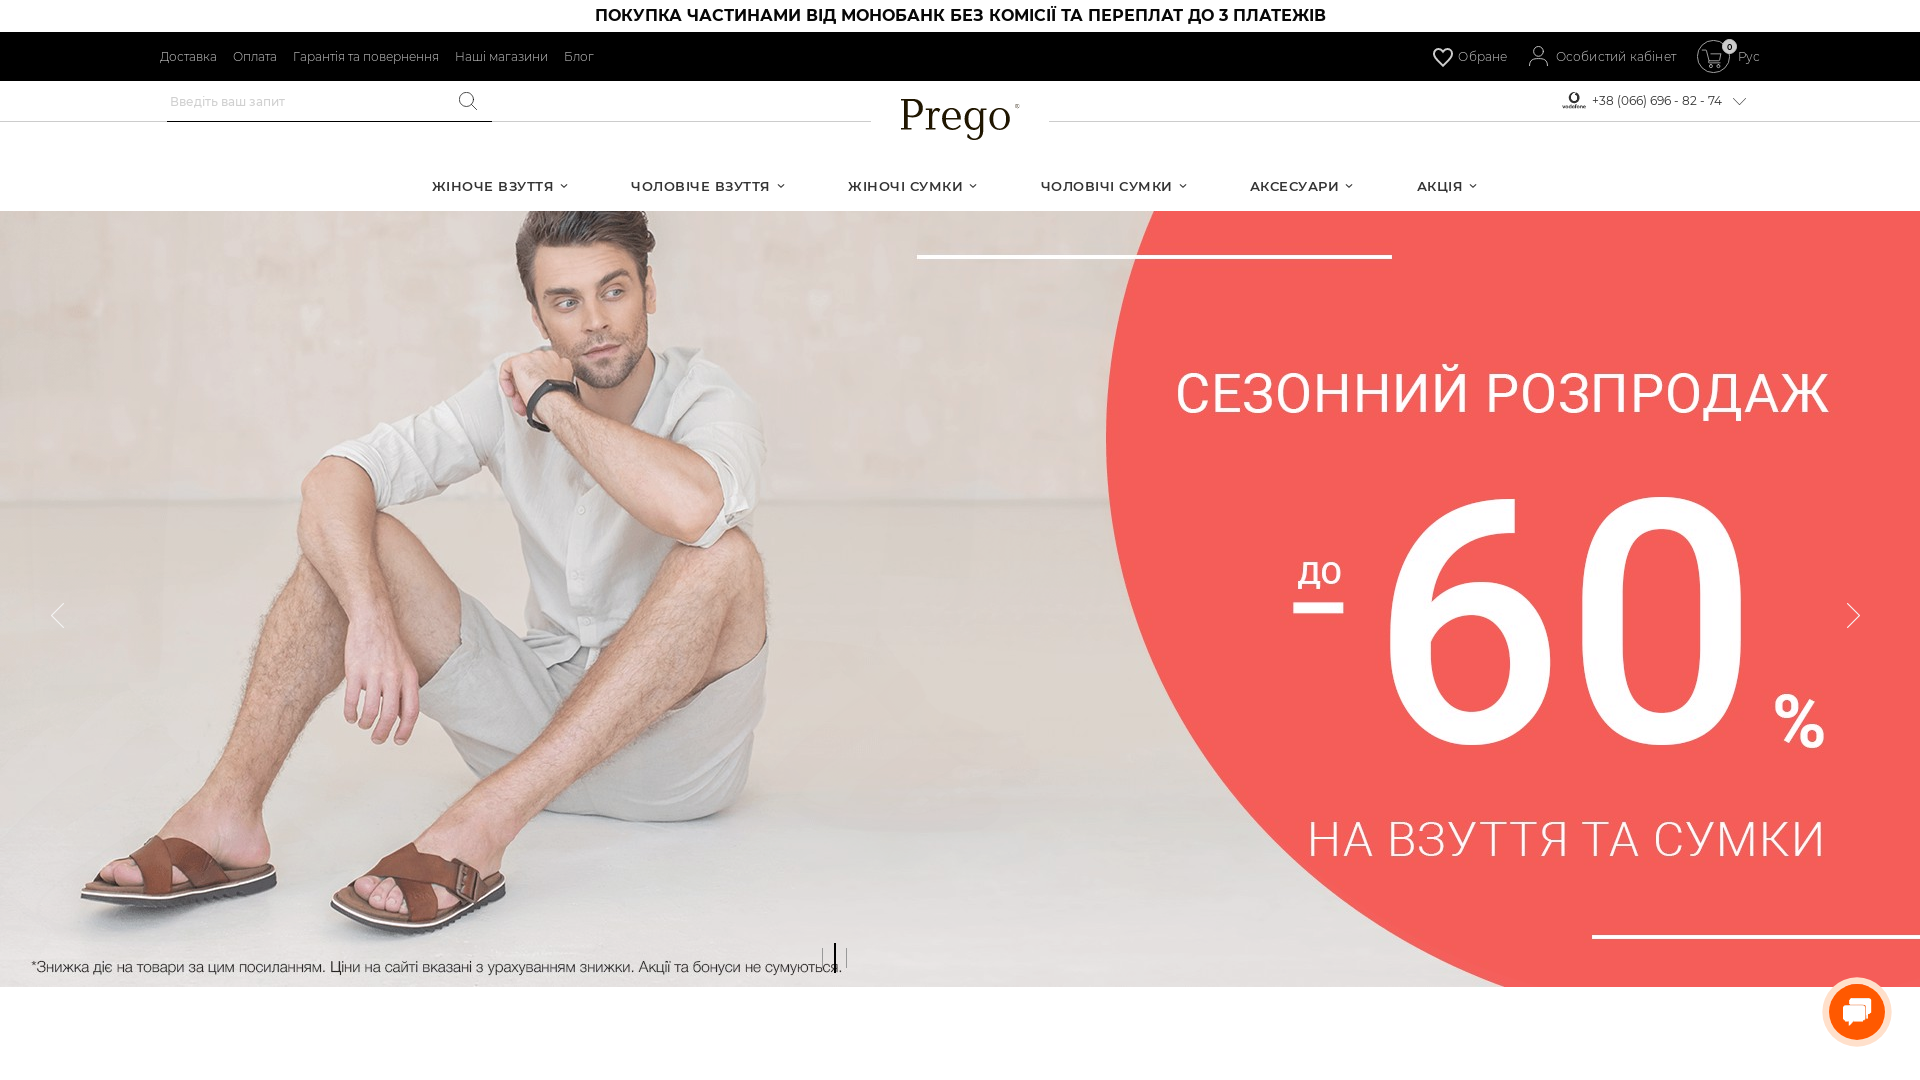 PREGO UA website